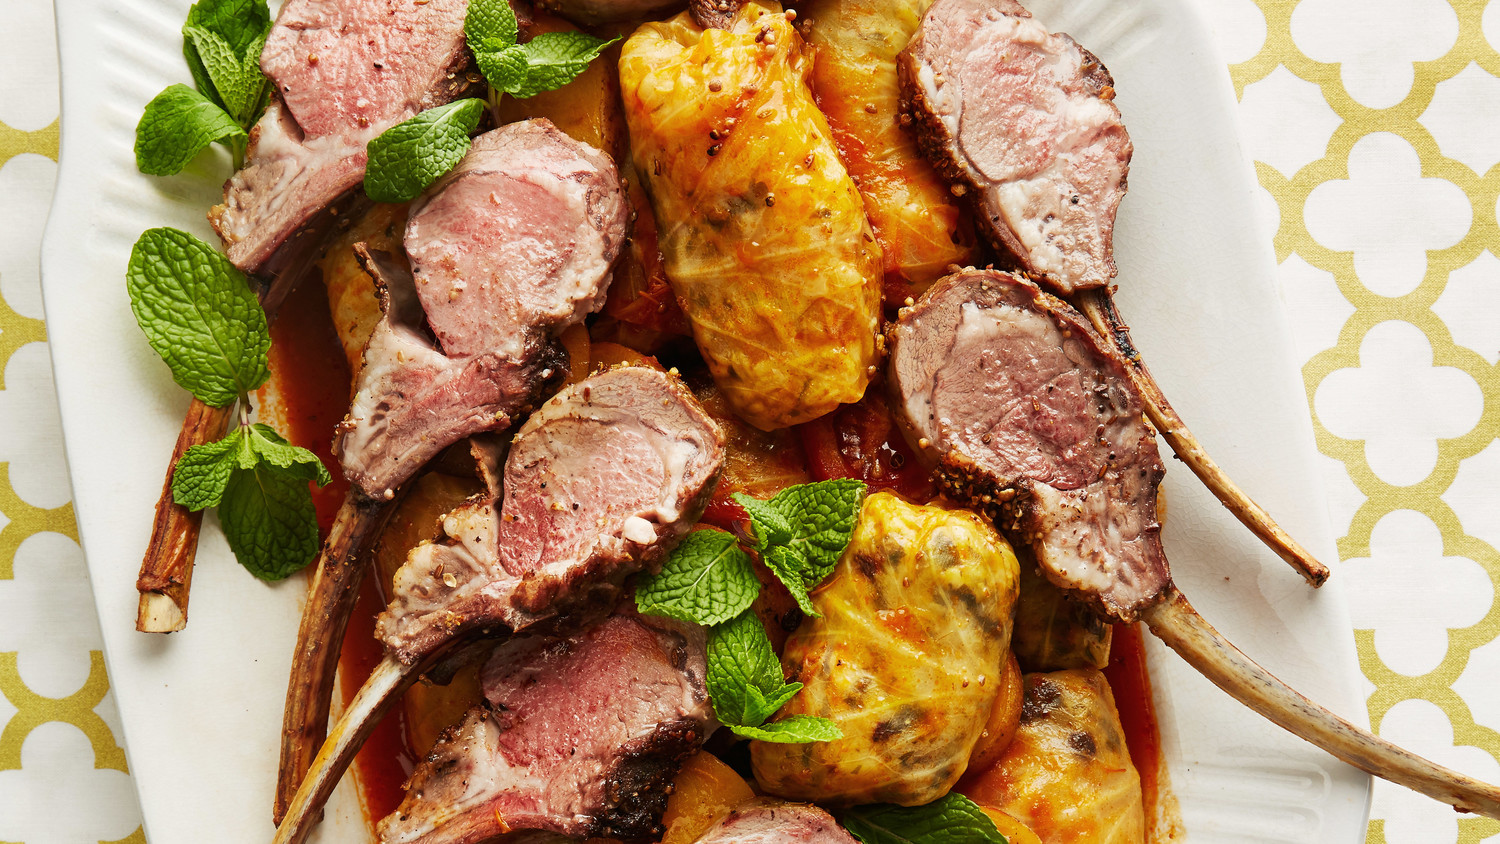 Stuffed Cabbage and Spiced Lamb Chops